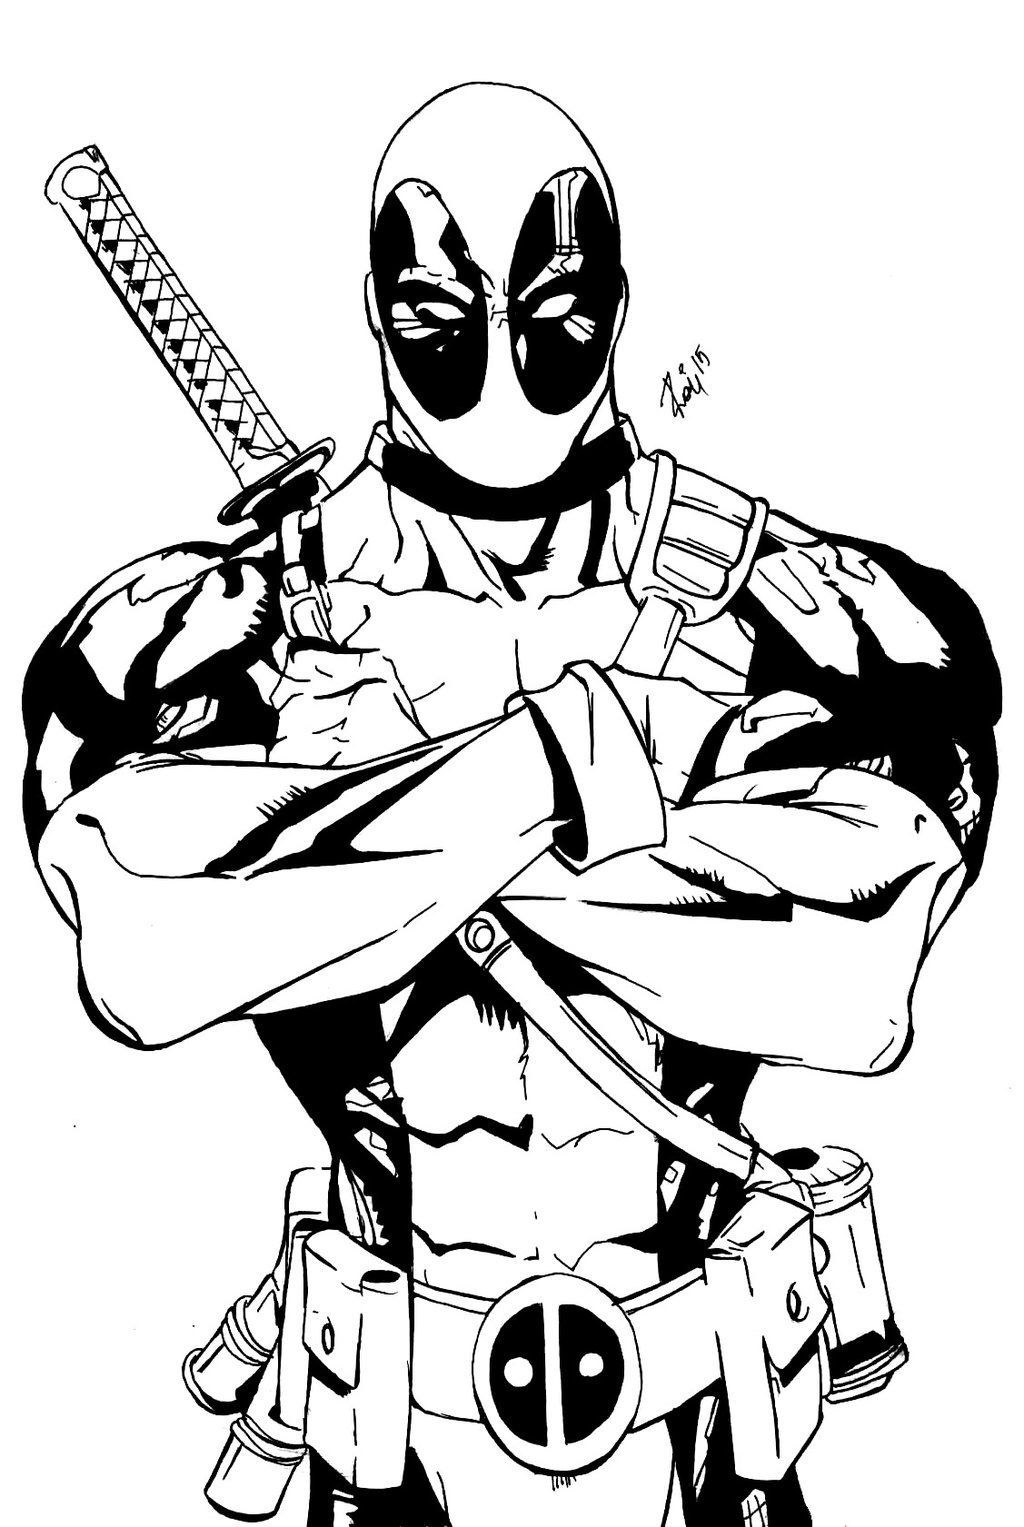 Deadpool Coloring Pages For Adults Avengers Coloring Pages Avengers Coloring Adult Coloring Pages